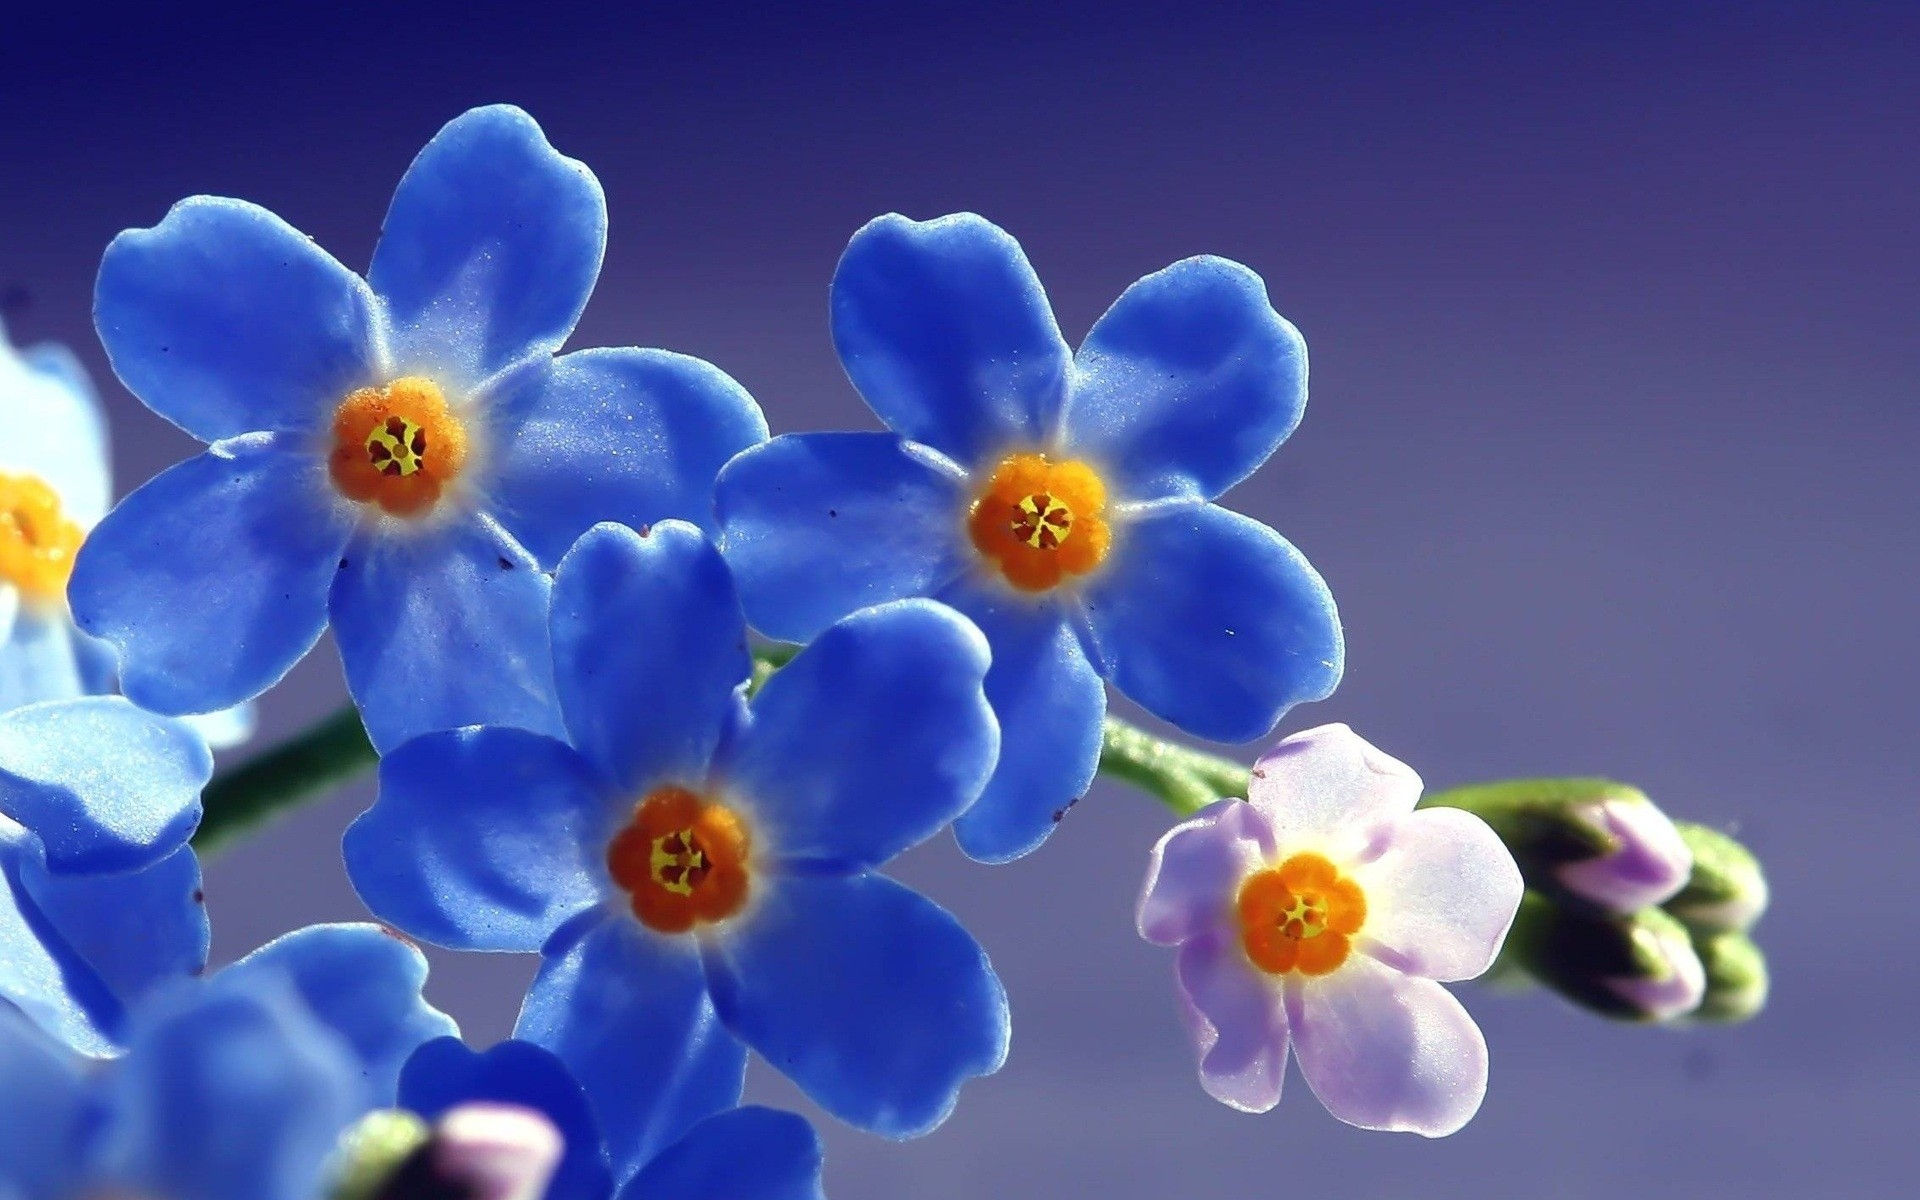 Blue Forget Me Not Flower Android Wallpapers For Free